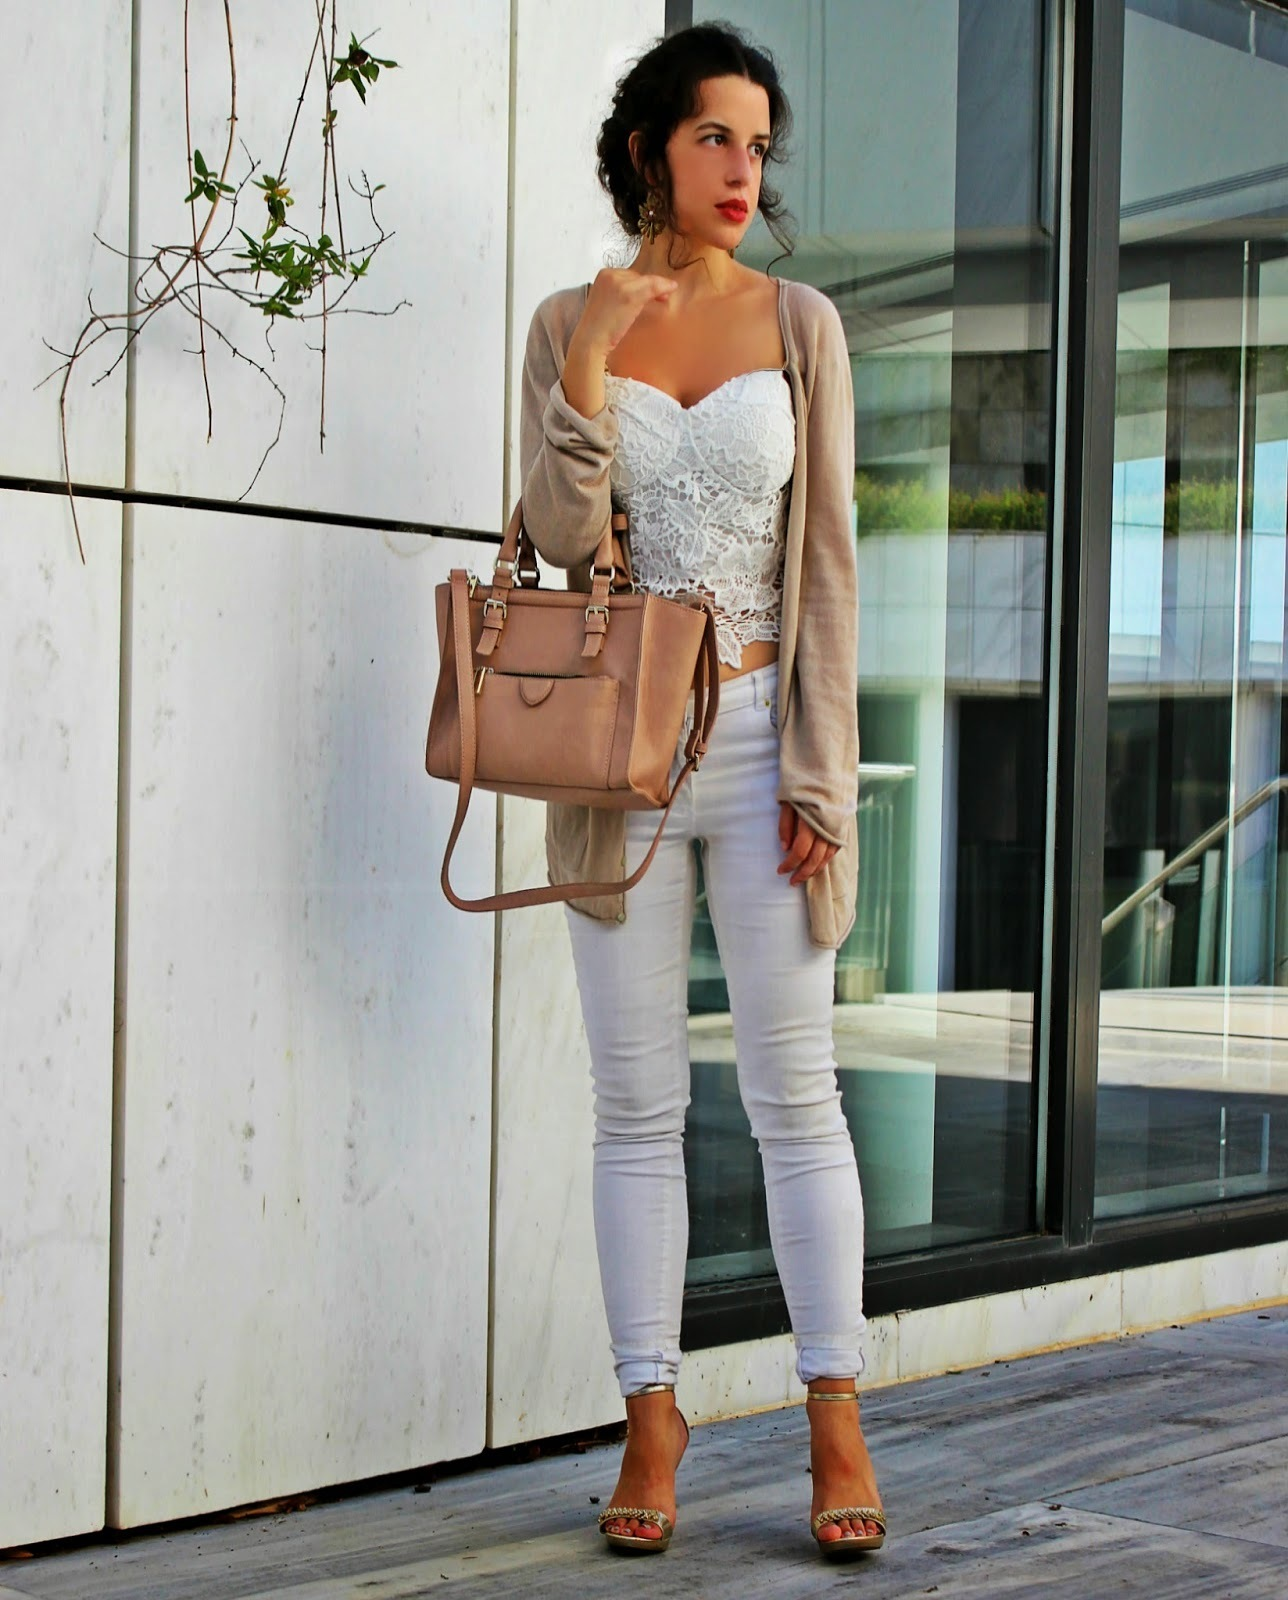 Women's Beige Open Cardigan, White Lace Bustier Top, White Skinny ...